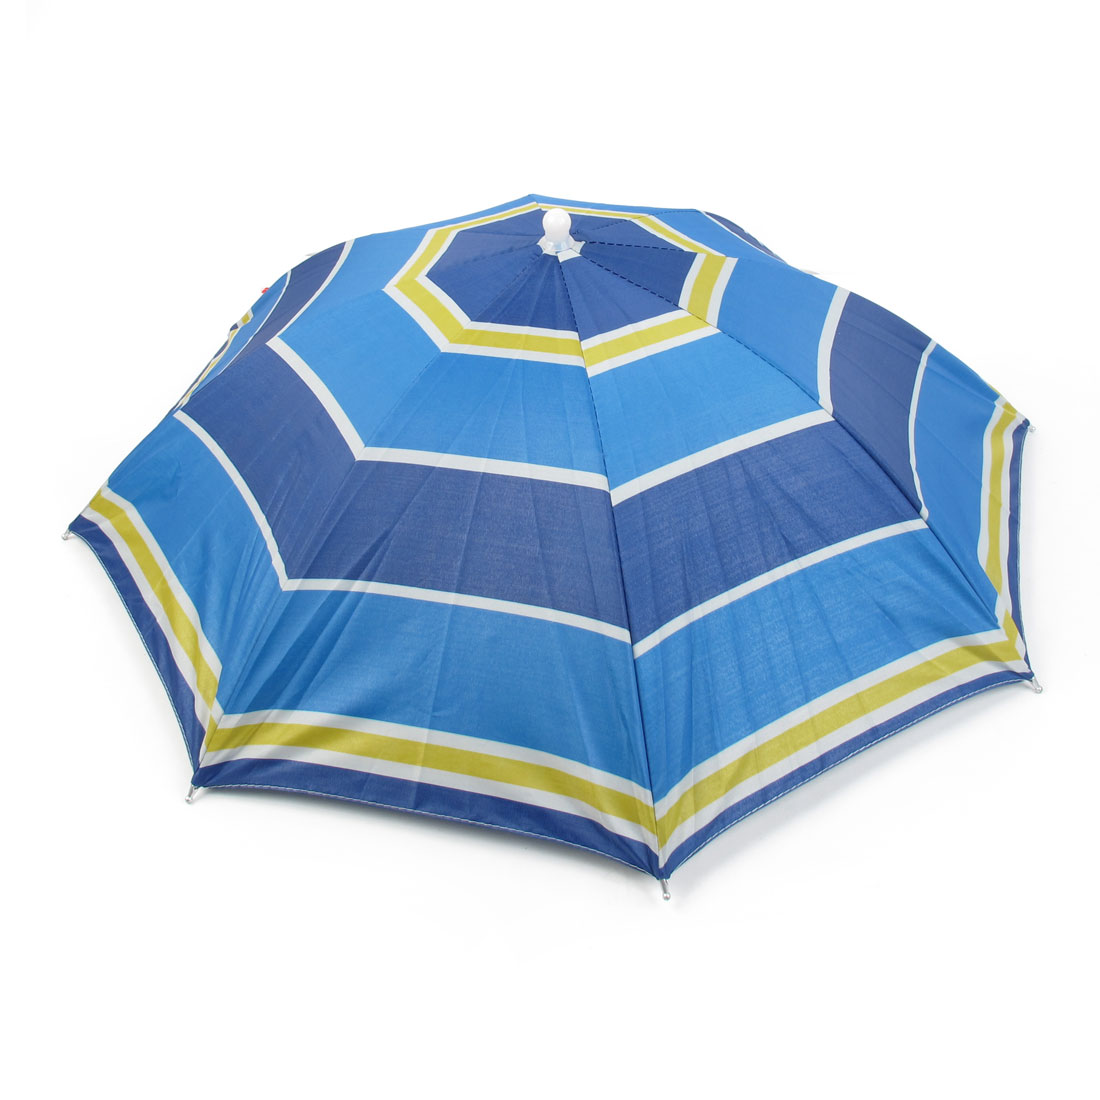 Stripes Printed Tri Color Polyester Metal Sturdy Ribs Fishing Sun Hat Umbrella